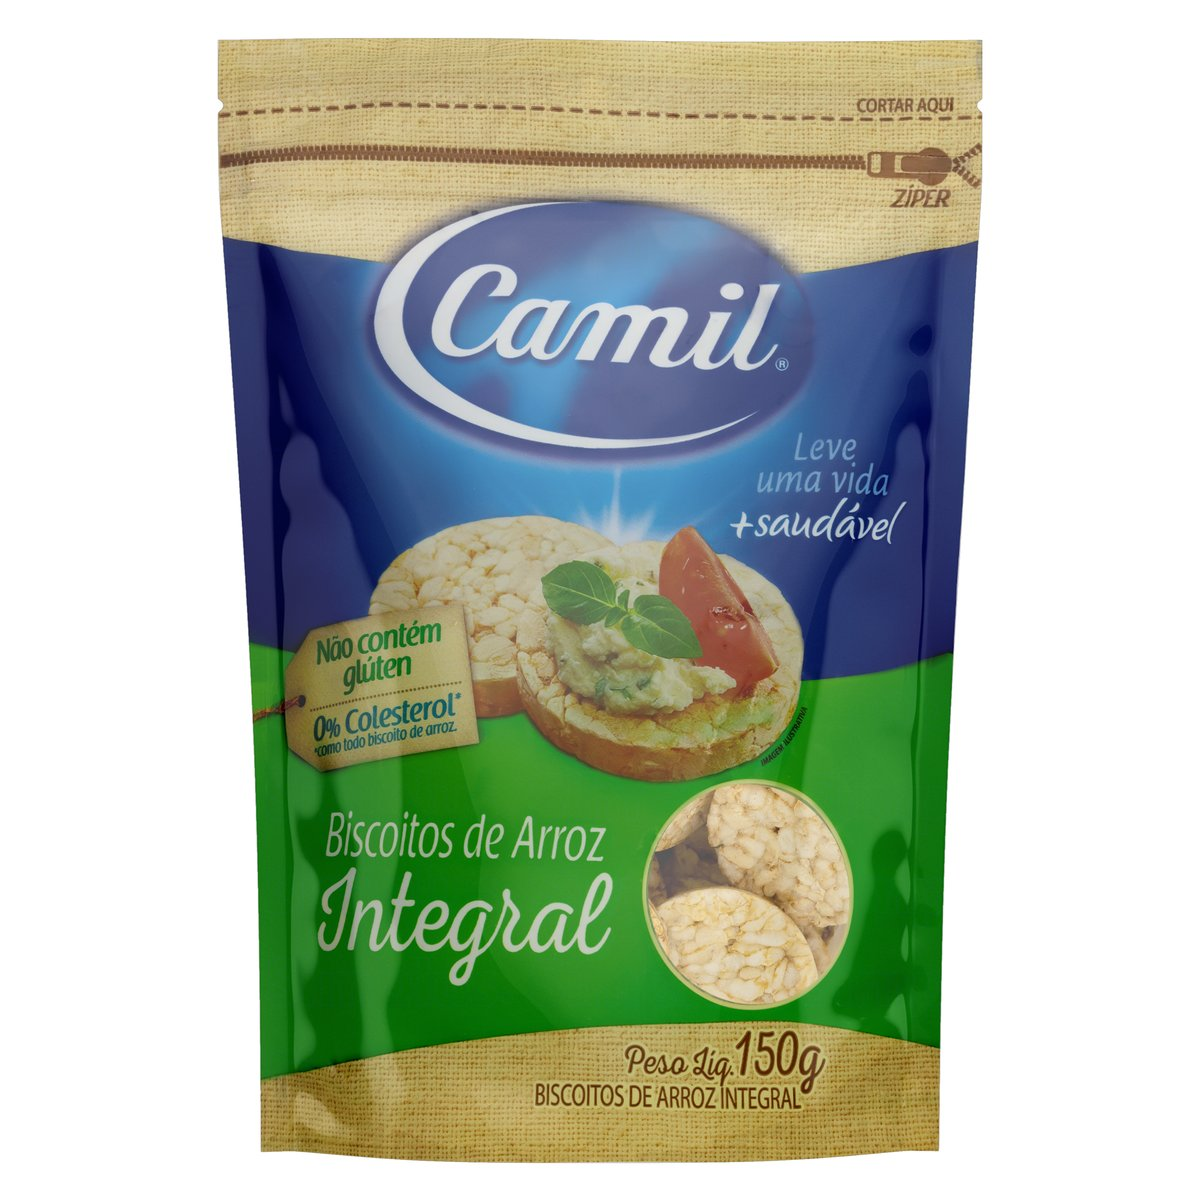 7896006779674 - MINI BISCOITO DE ARROZ INTEGRAL CAMIL